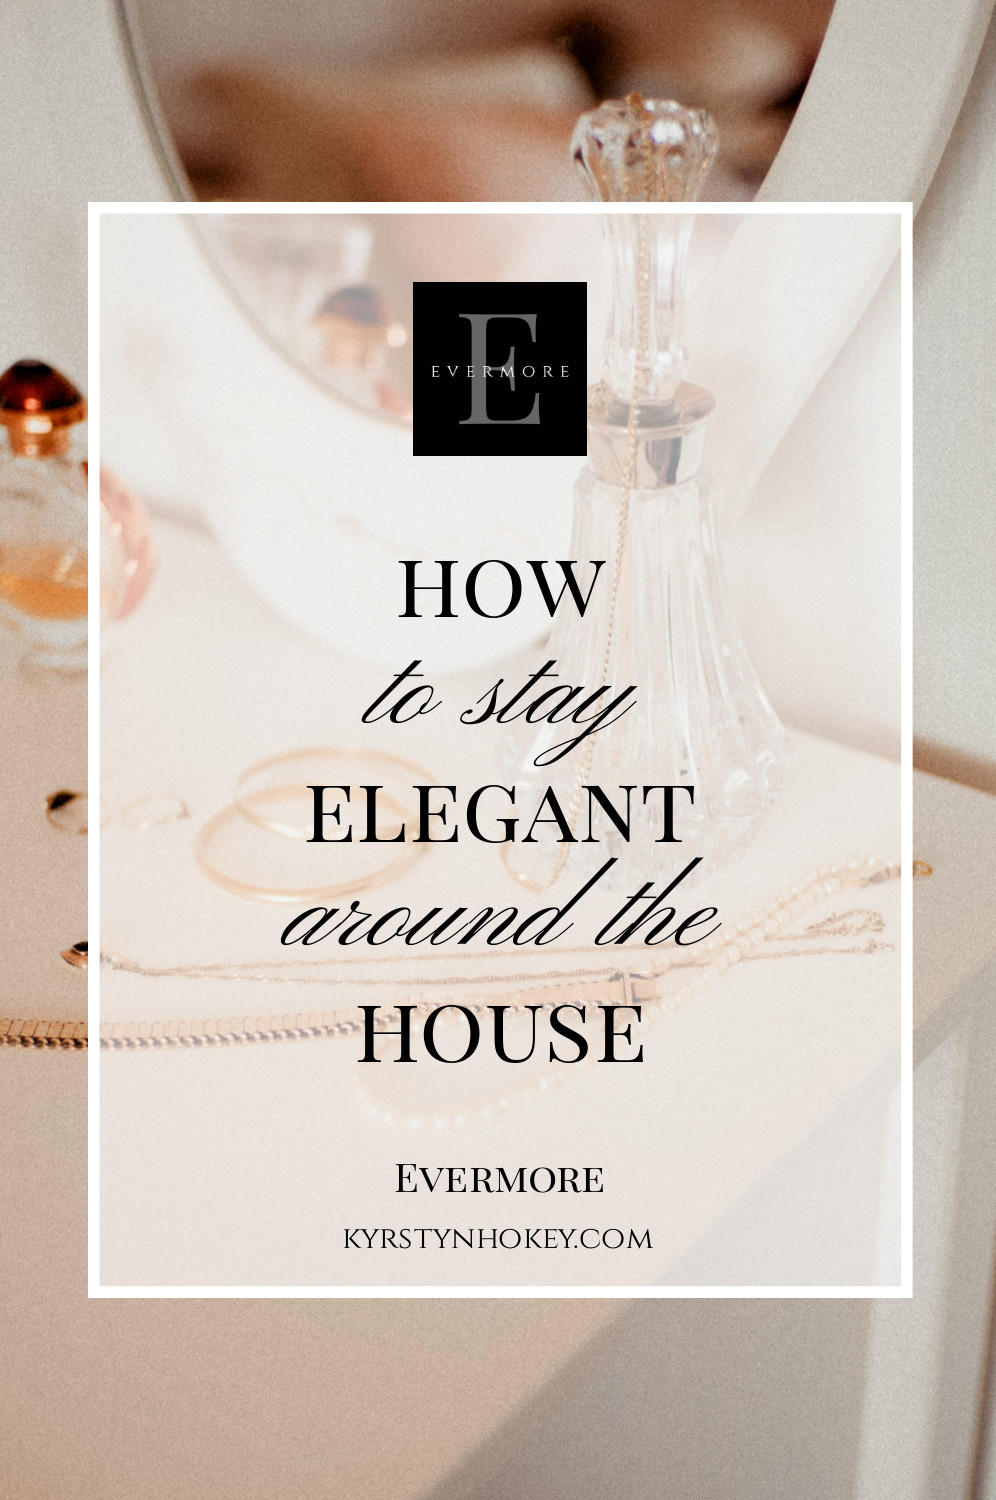 elegance at home, how to stay elegant at home, home style, elegant style